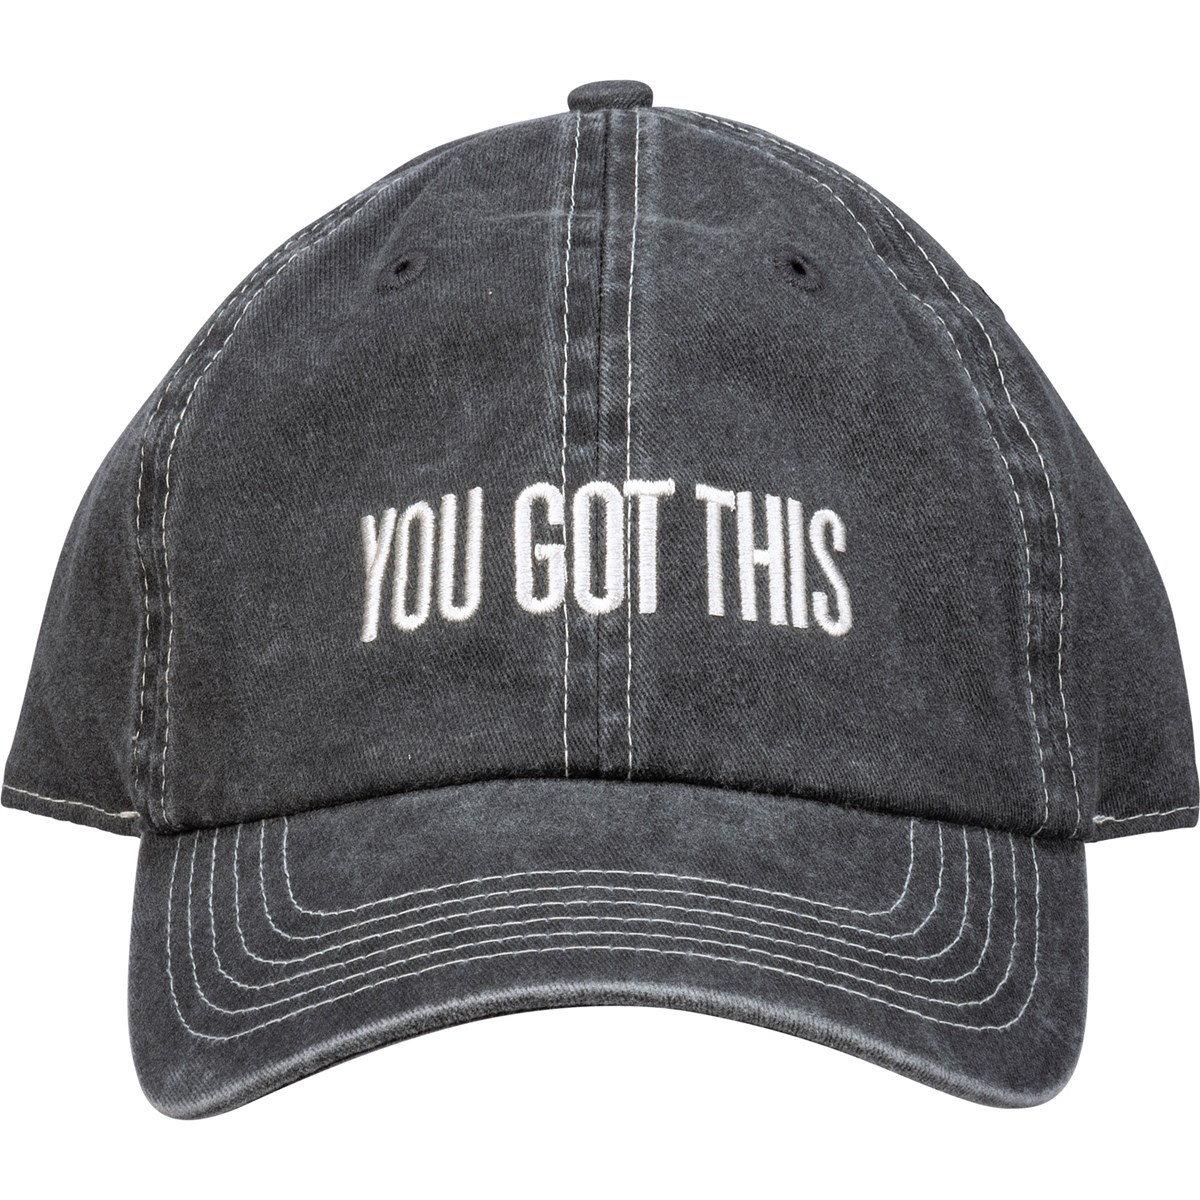 Baseball Cap - You Got This - One Size Fits Most - Cotton, Metal